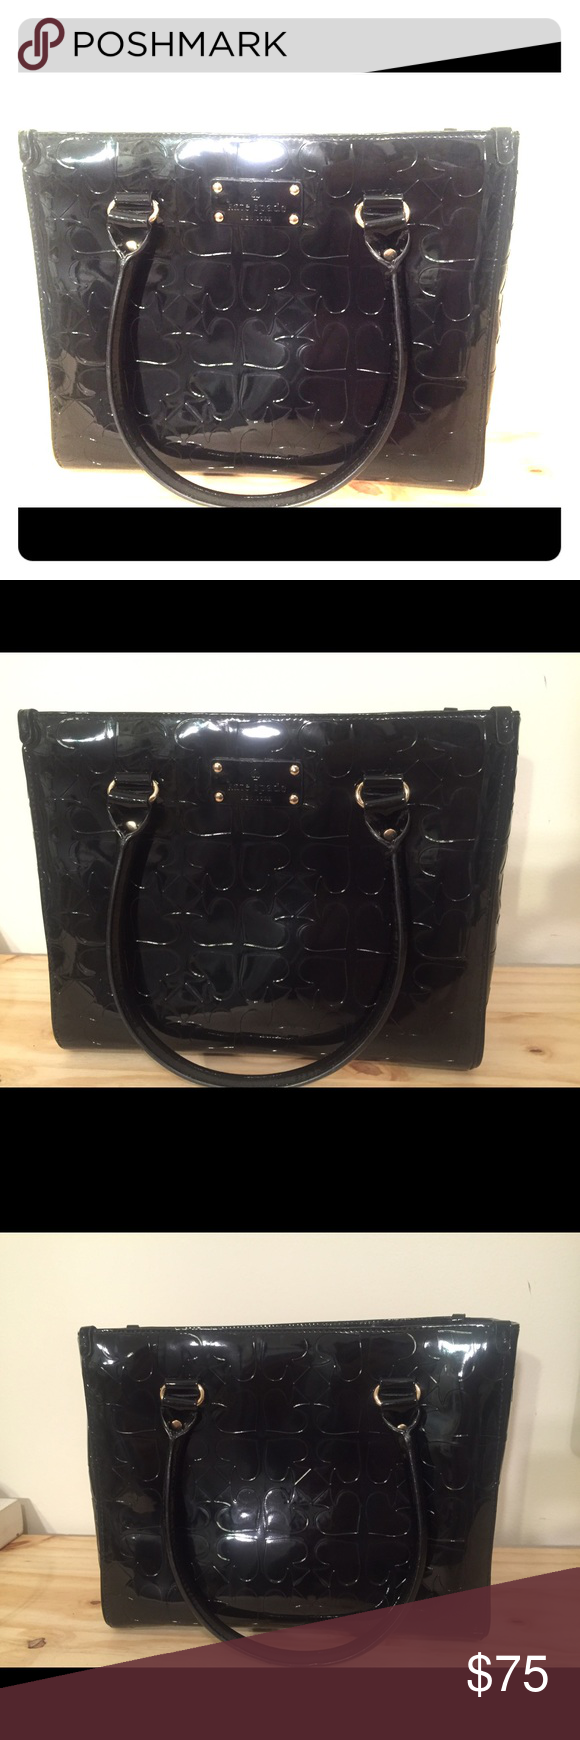 Kate Spade Patent Leather Bag Gorgeous Black Very Ious